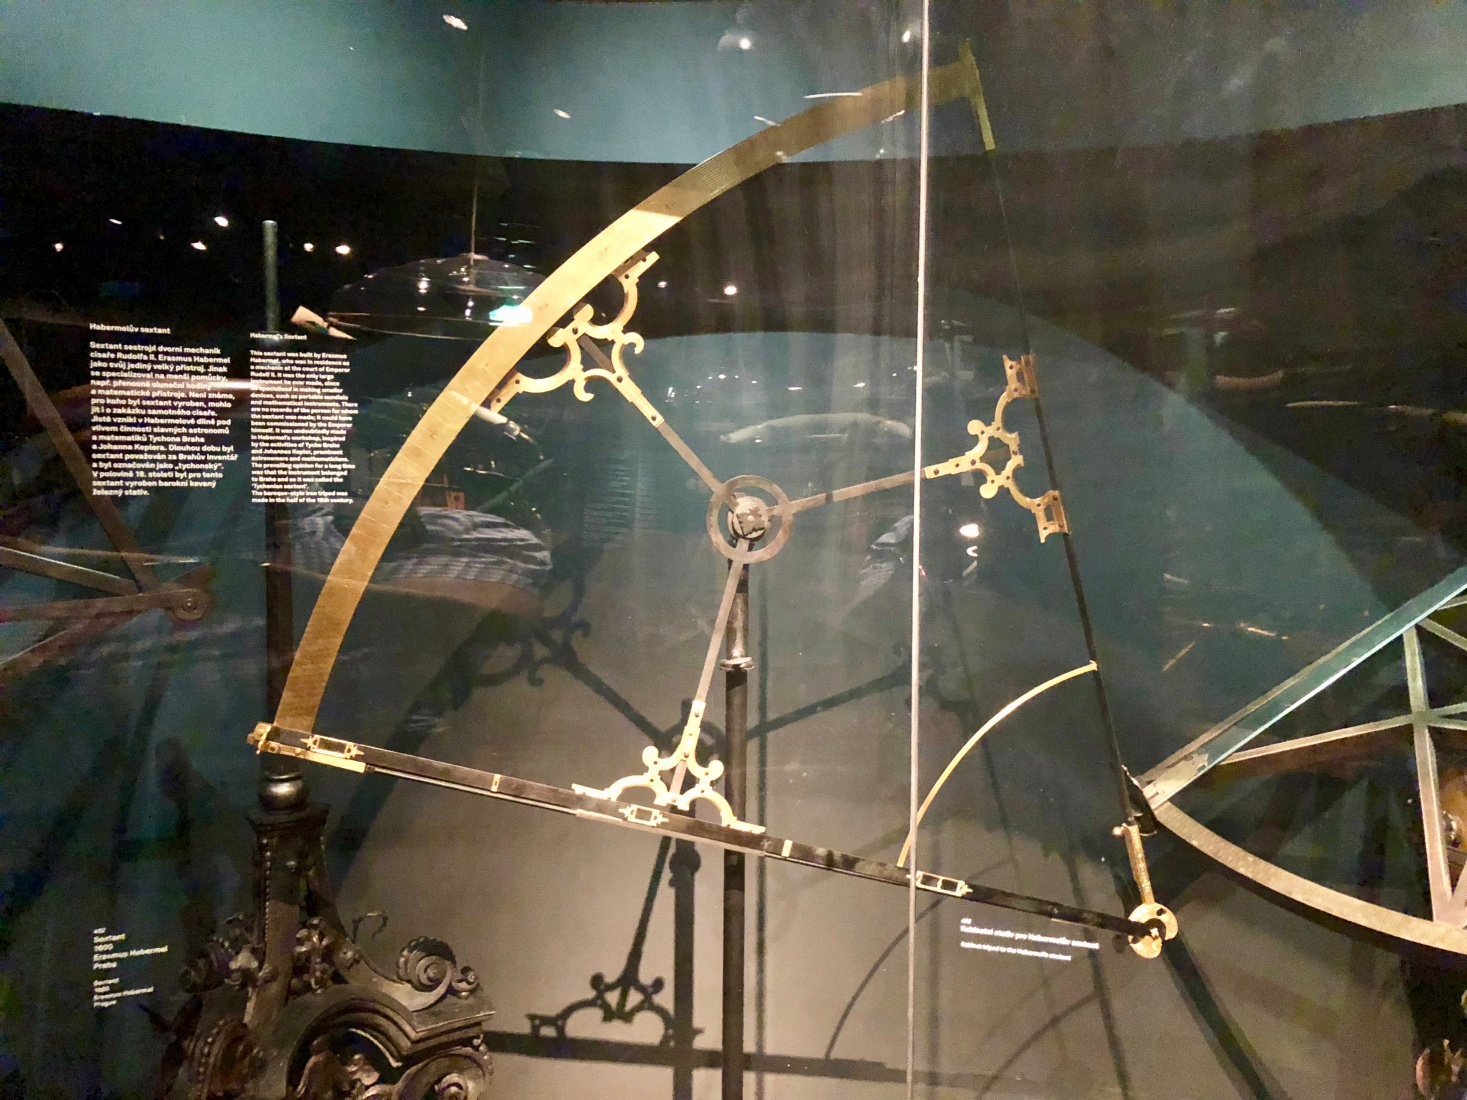 A large sextant built by engineer Erasmus Habermehl in the late 16th century on the order of Emperor Rudolf II, which may have been used by Tycho Brahe, is on display at Prague's National Technical Museum.